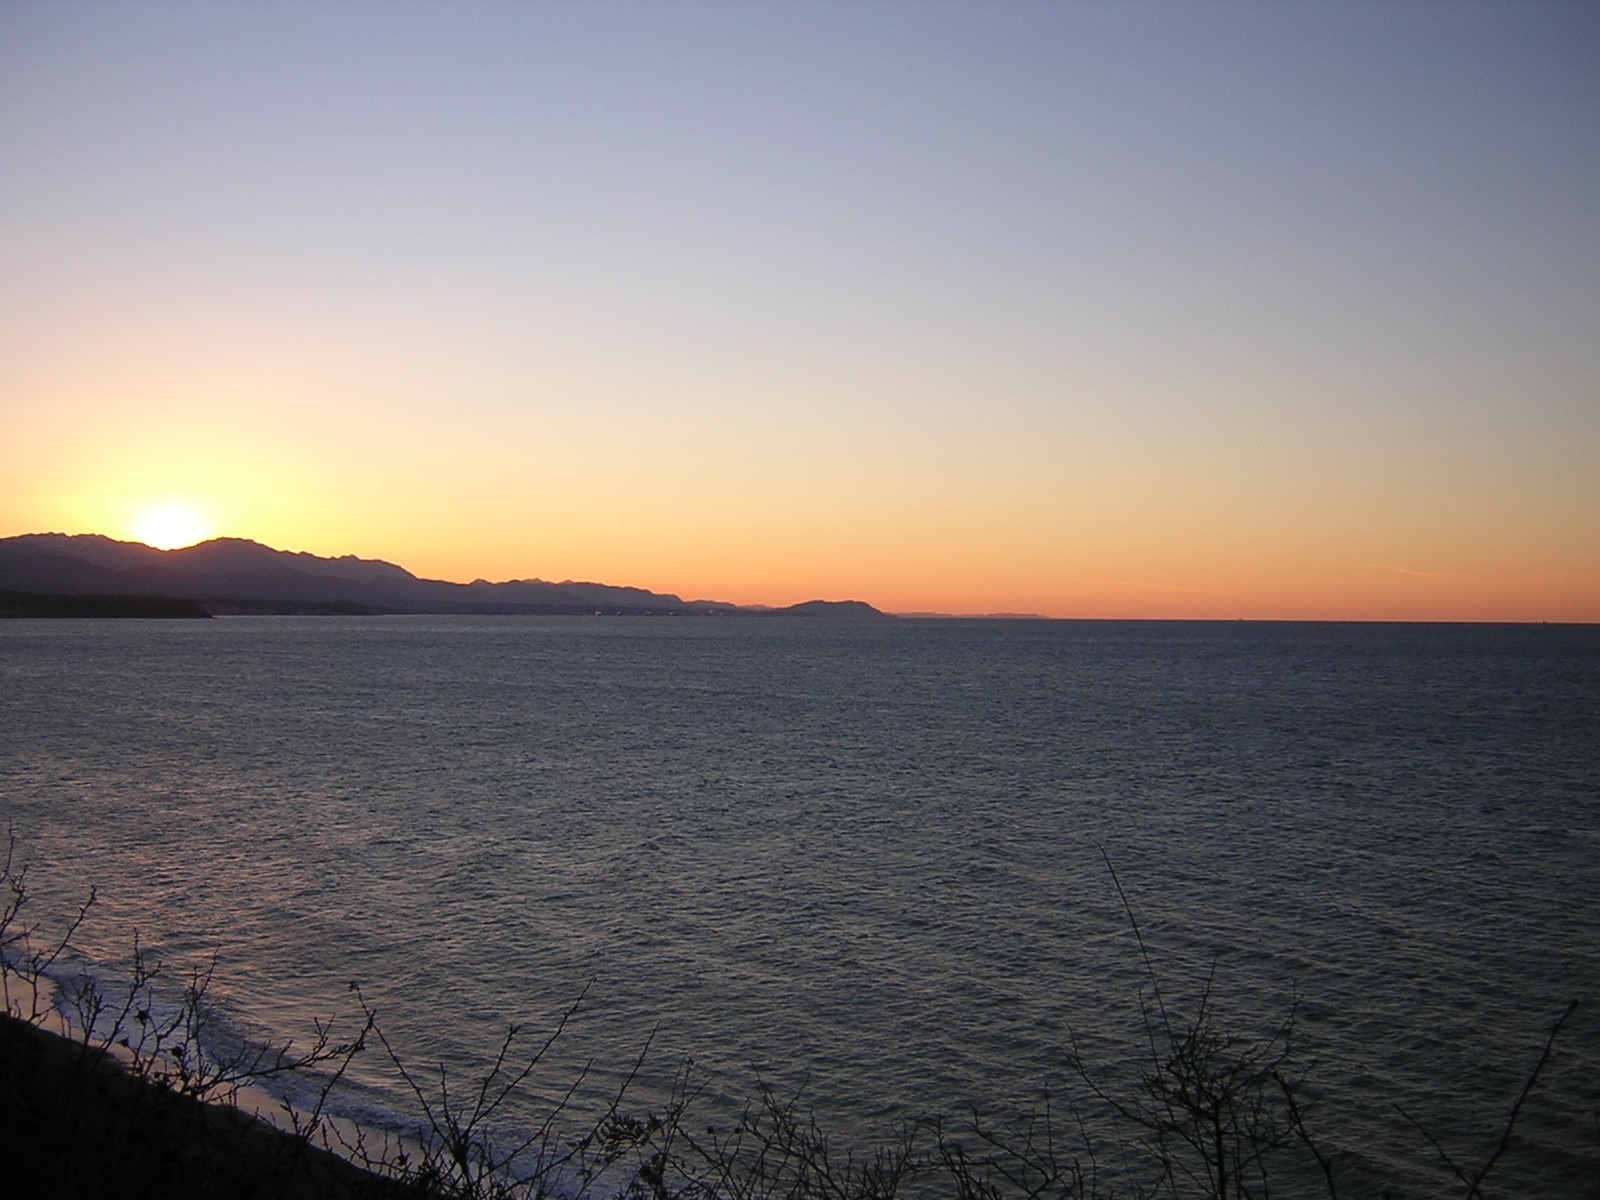 A winter sunset at the Dungeness Wildlife Refuge. The sun has just set behind the mountains and the water is dark gray. There are bushes in the foreground